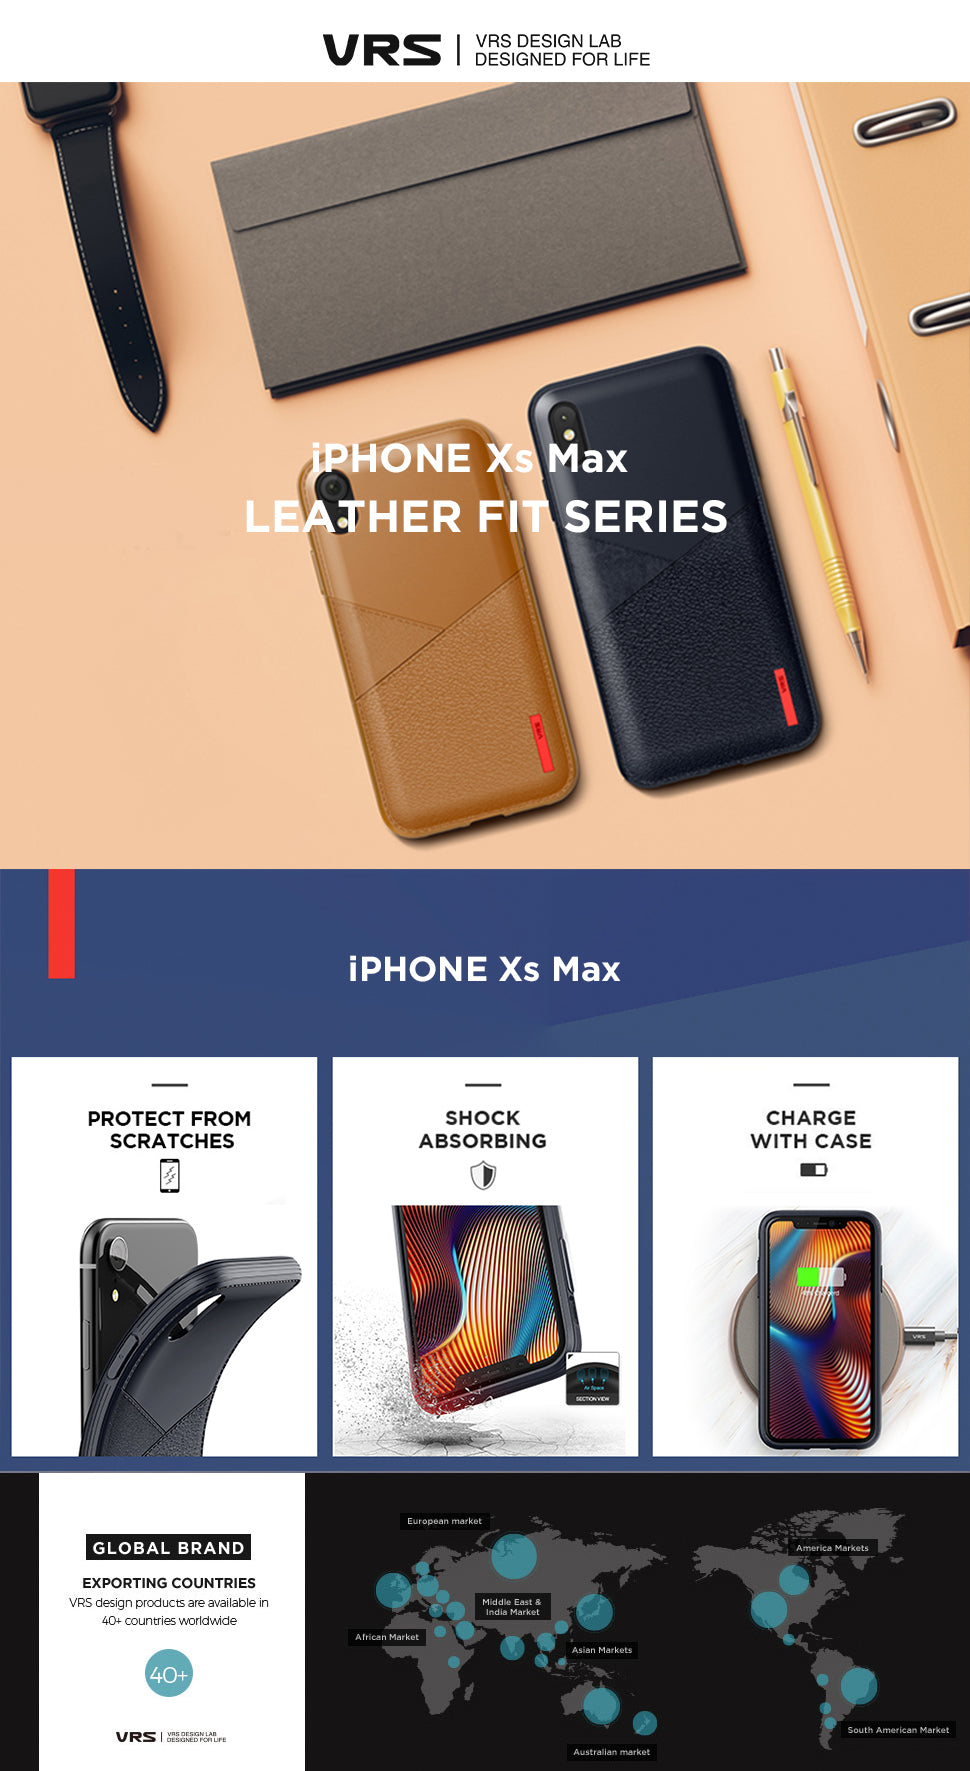 Best Slim Case for iPhone Xs Max Leather Fit Series From VRS Design